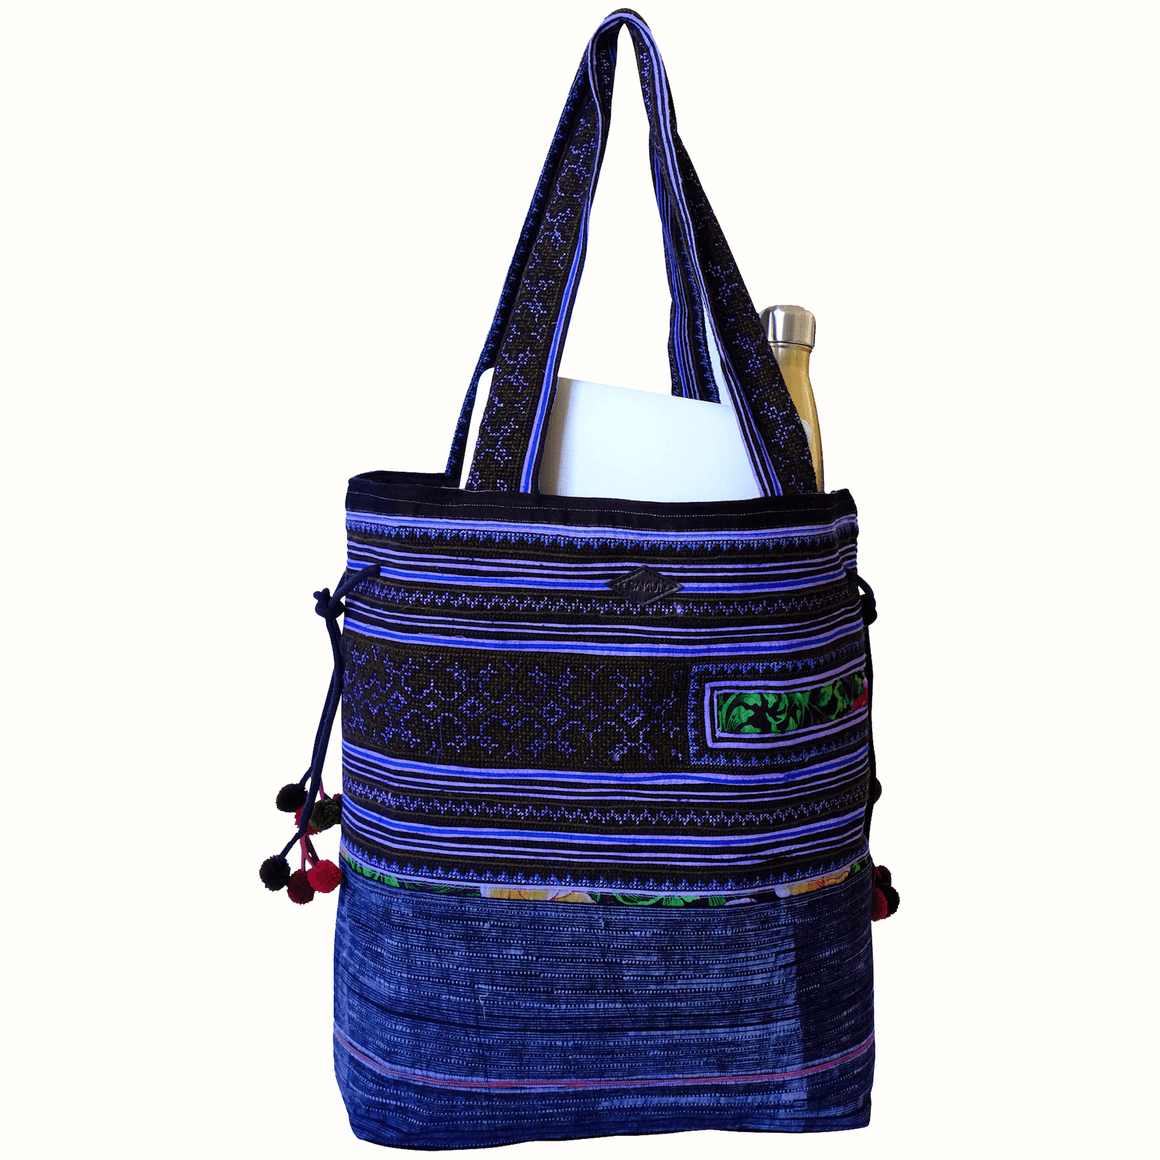 Samui Bags Full Moon Weekender Bag Handmade Thai Bag